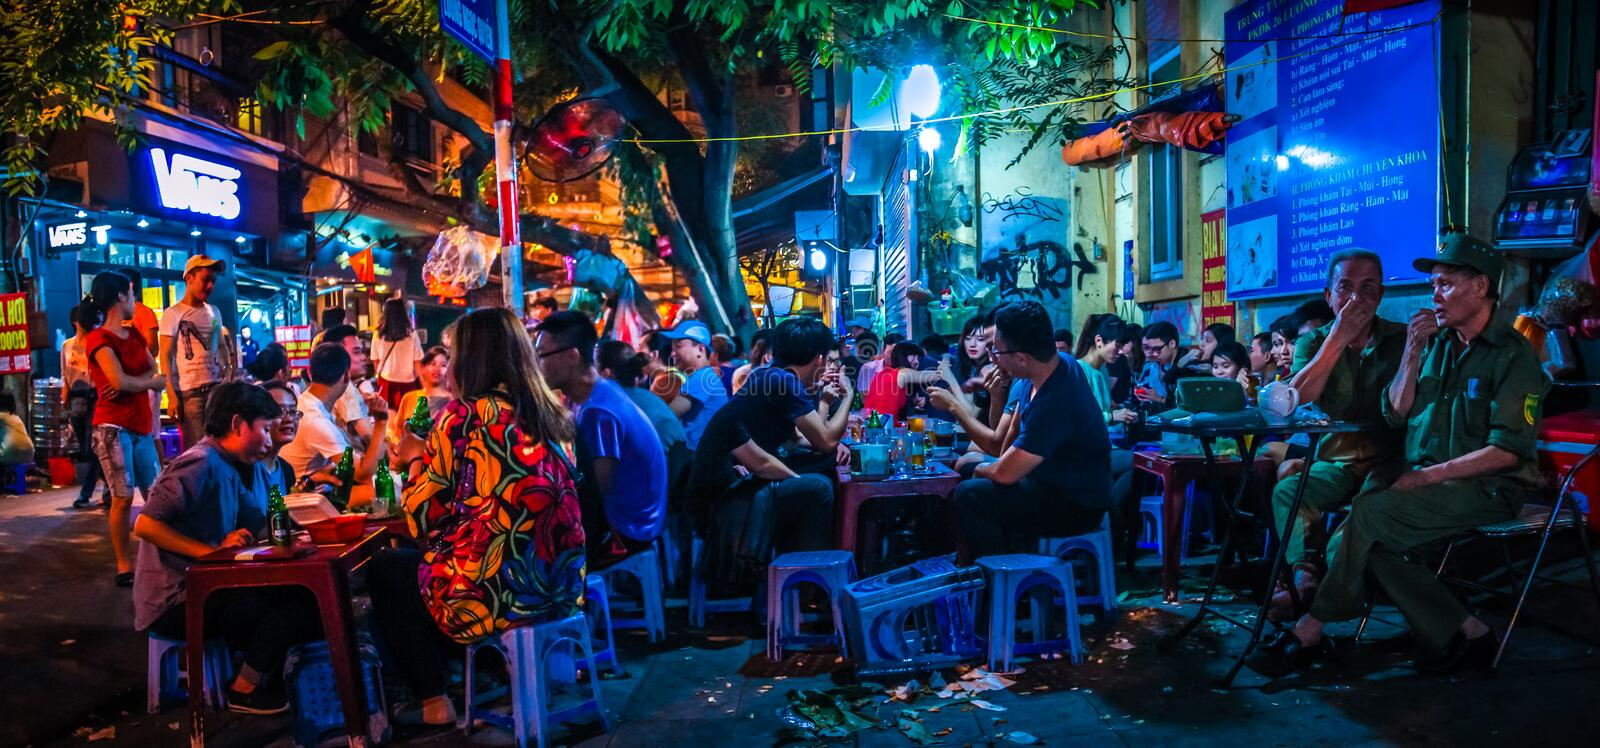 Panoramic view of Bia Hoi Junction, Ta Hien and Luong Ngoc Quyen streets in the Hanoi Old Quarter, Vietnam royalty free stock photography